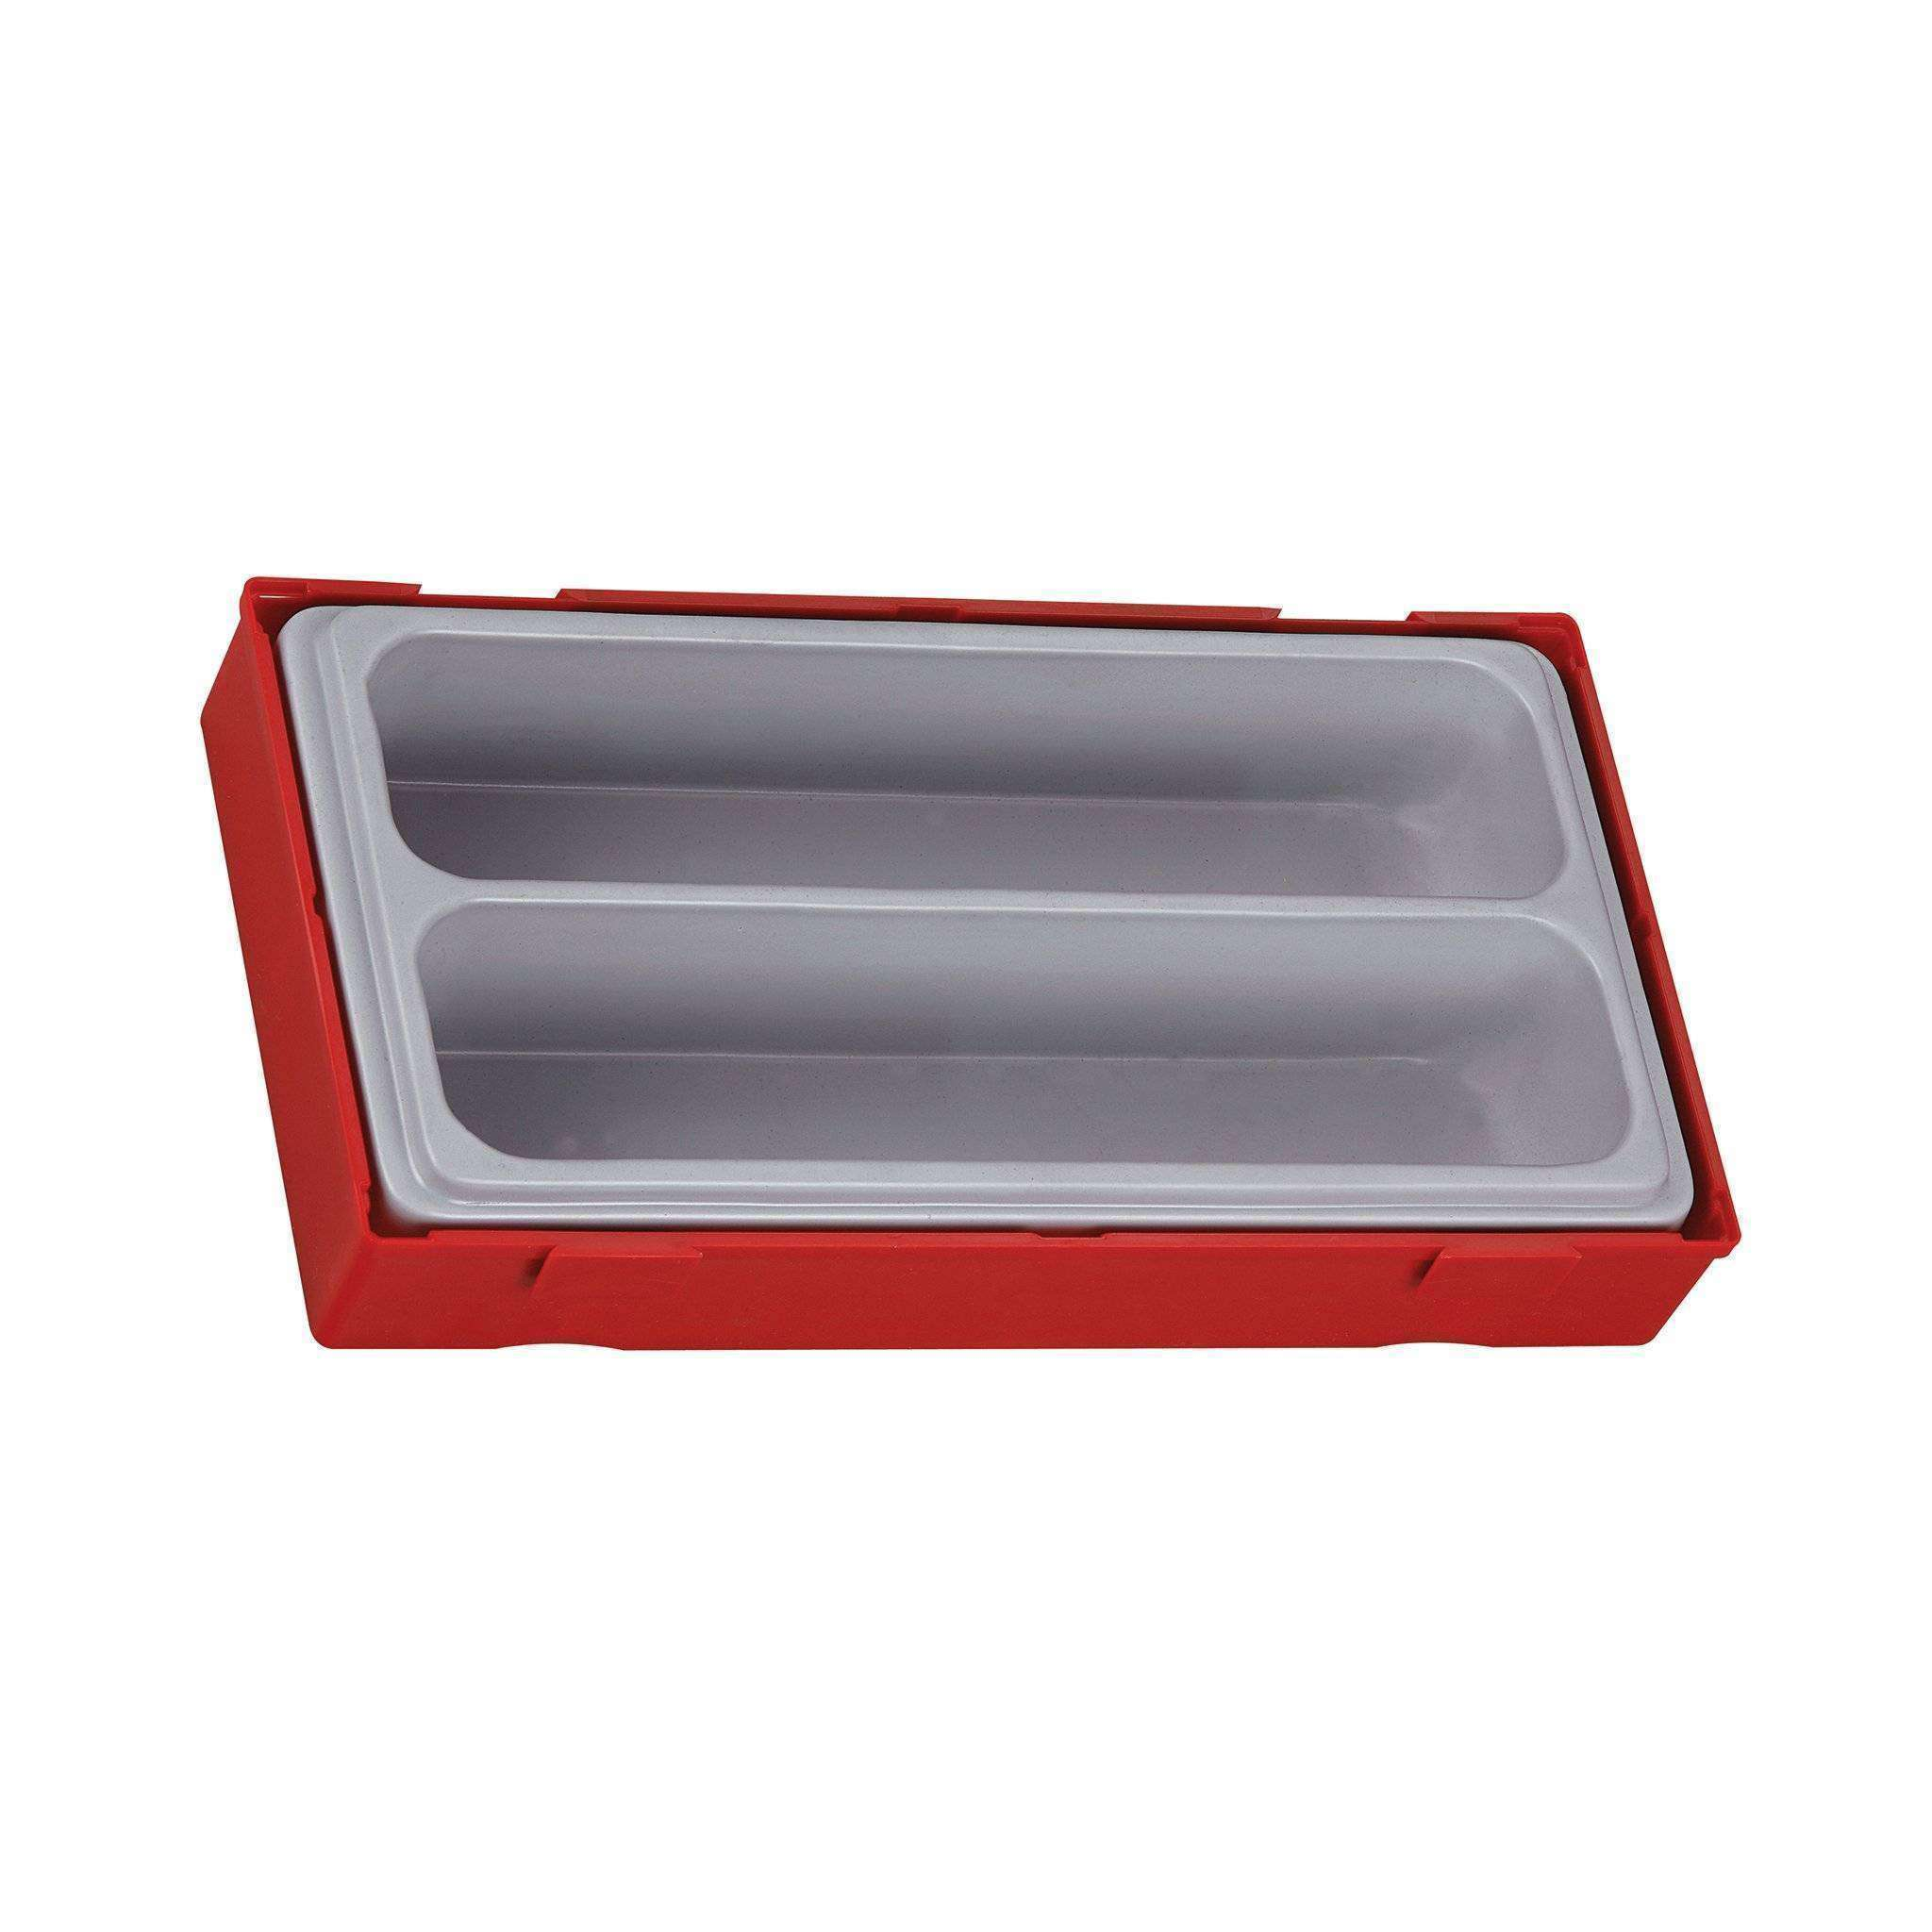 EMPTY TC-TRAY 2 SPACE - Teng Tools USA